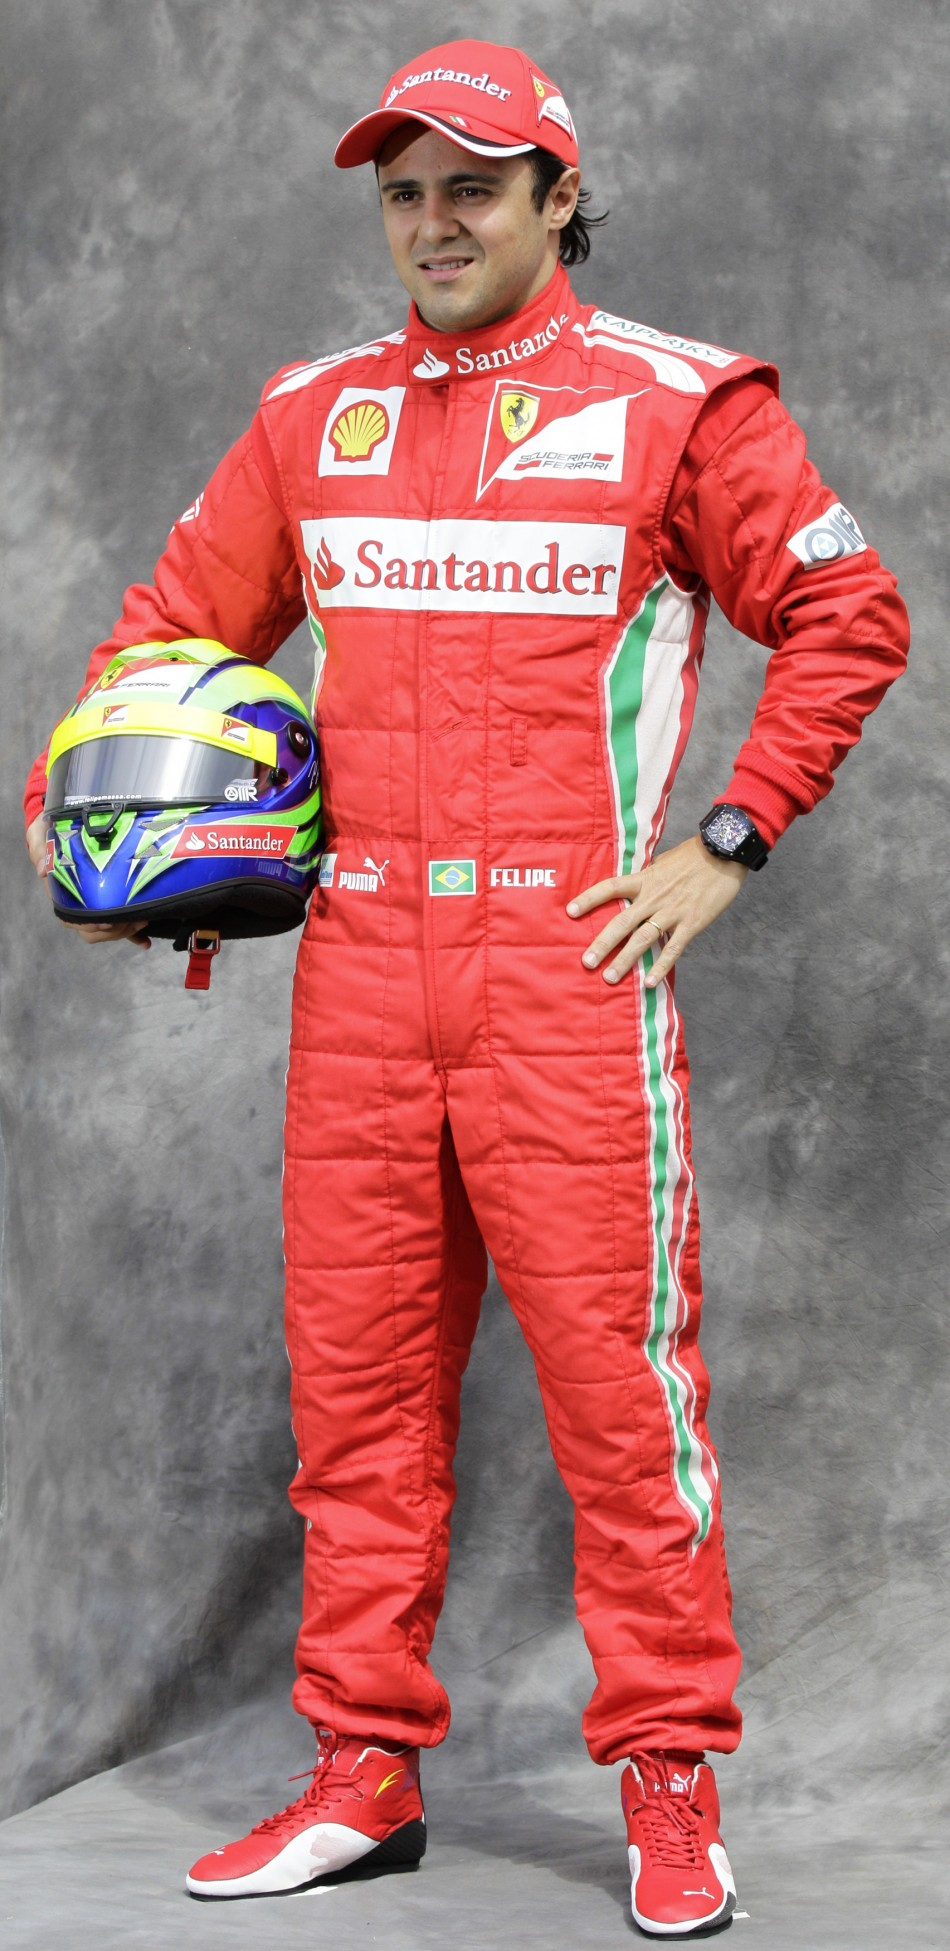 Ferrari Formula One driver Massa poses prior to the Australian F1 Grand Prix at the Albert Park circuit in Melbourne